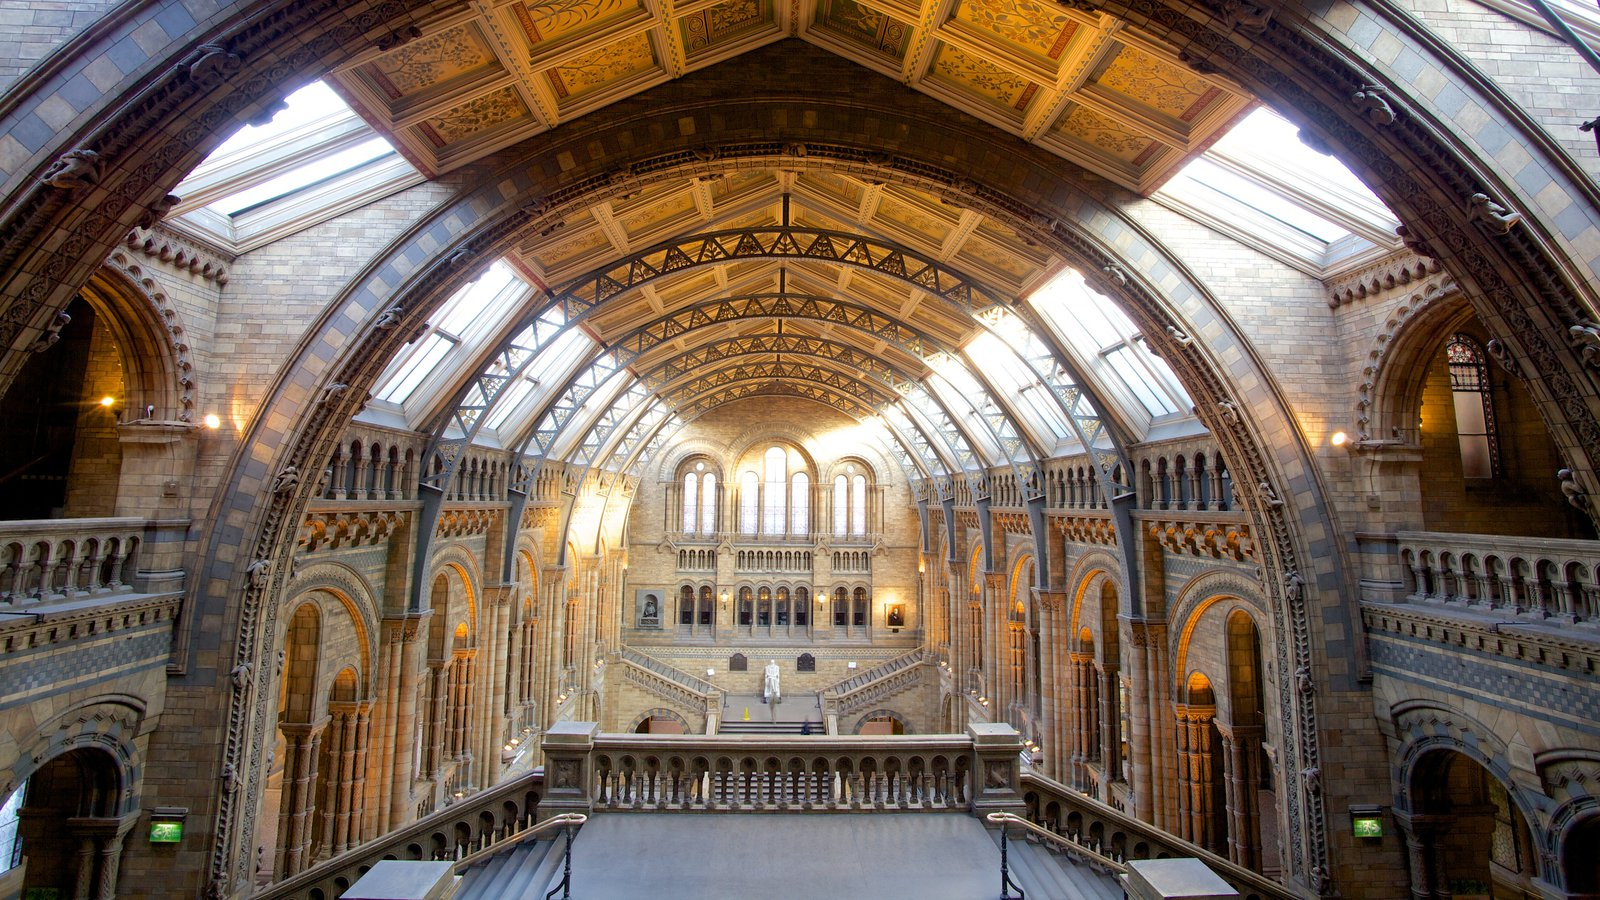 London Natural History Museum which includes interior views, heritage architecture and a church or cathedral